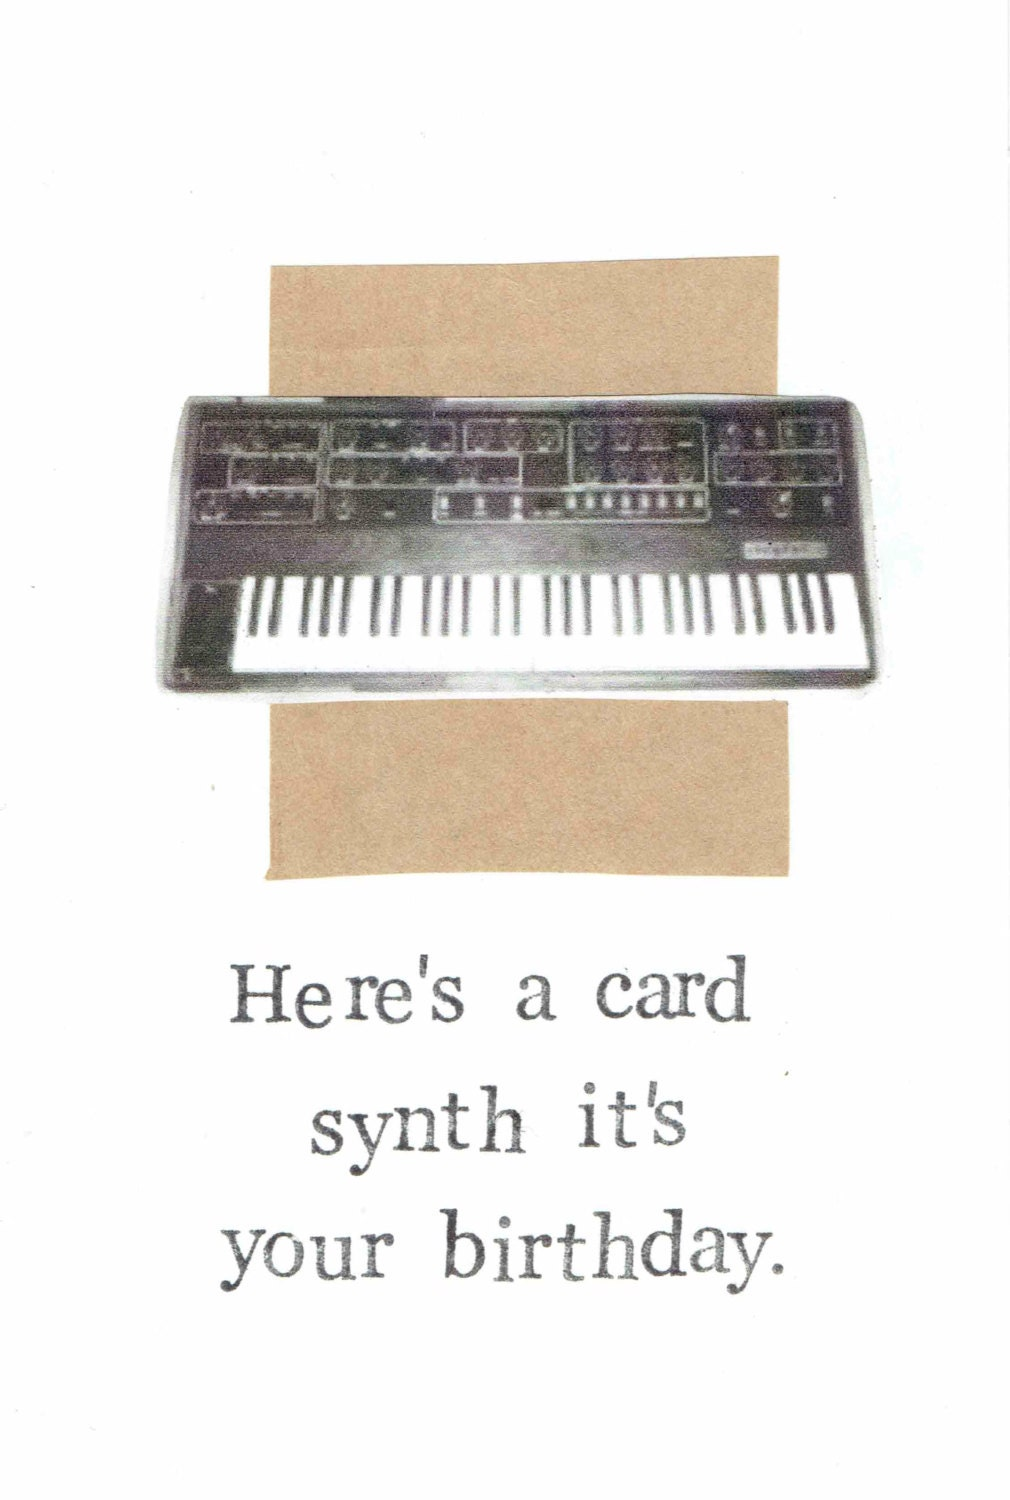 Heres A Card Synth Its Your Birthday Funny Happy